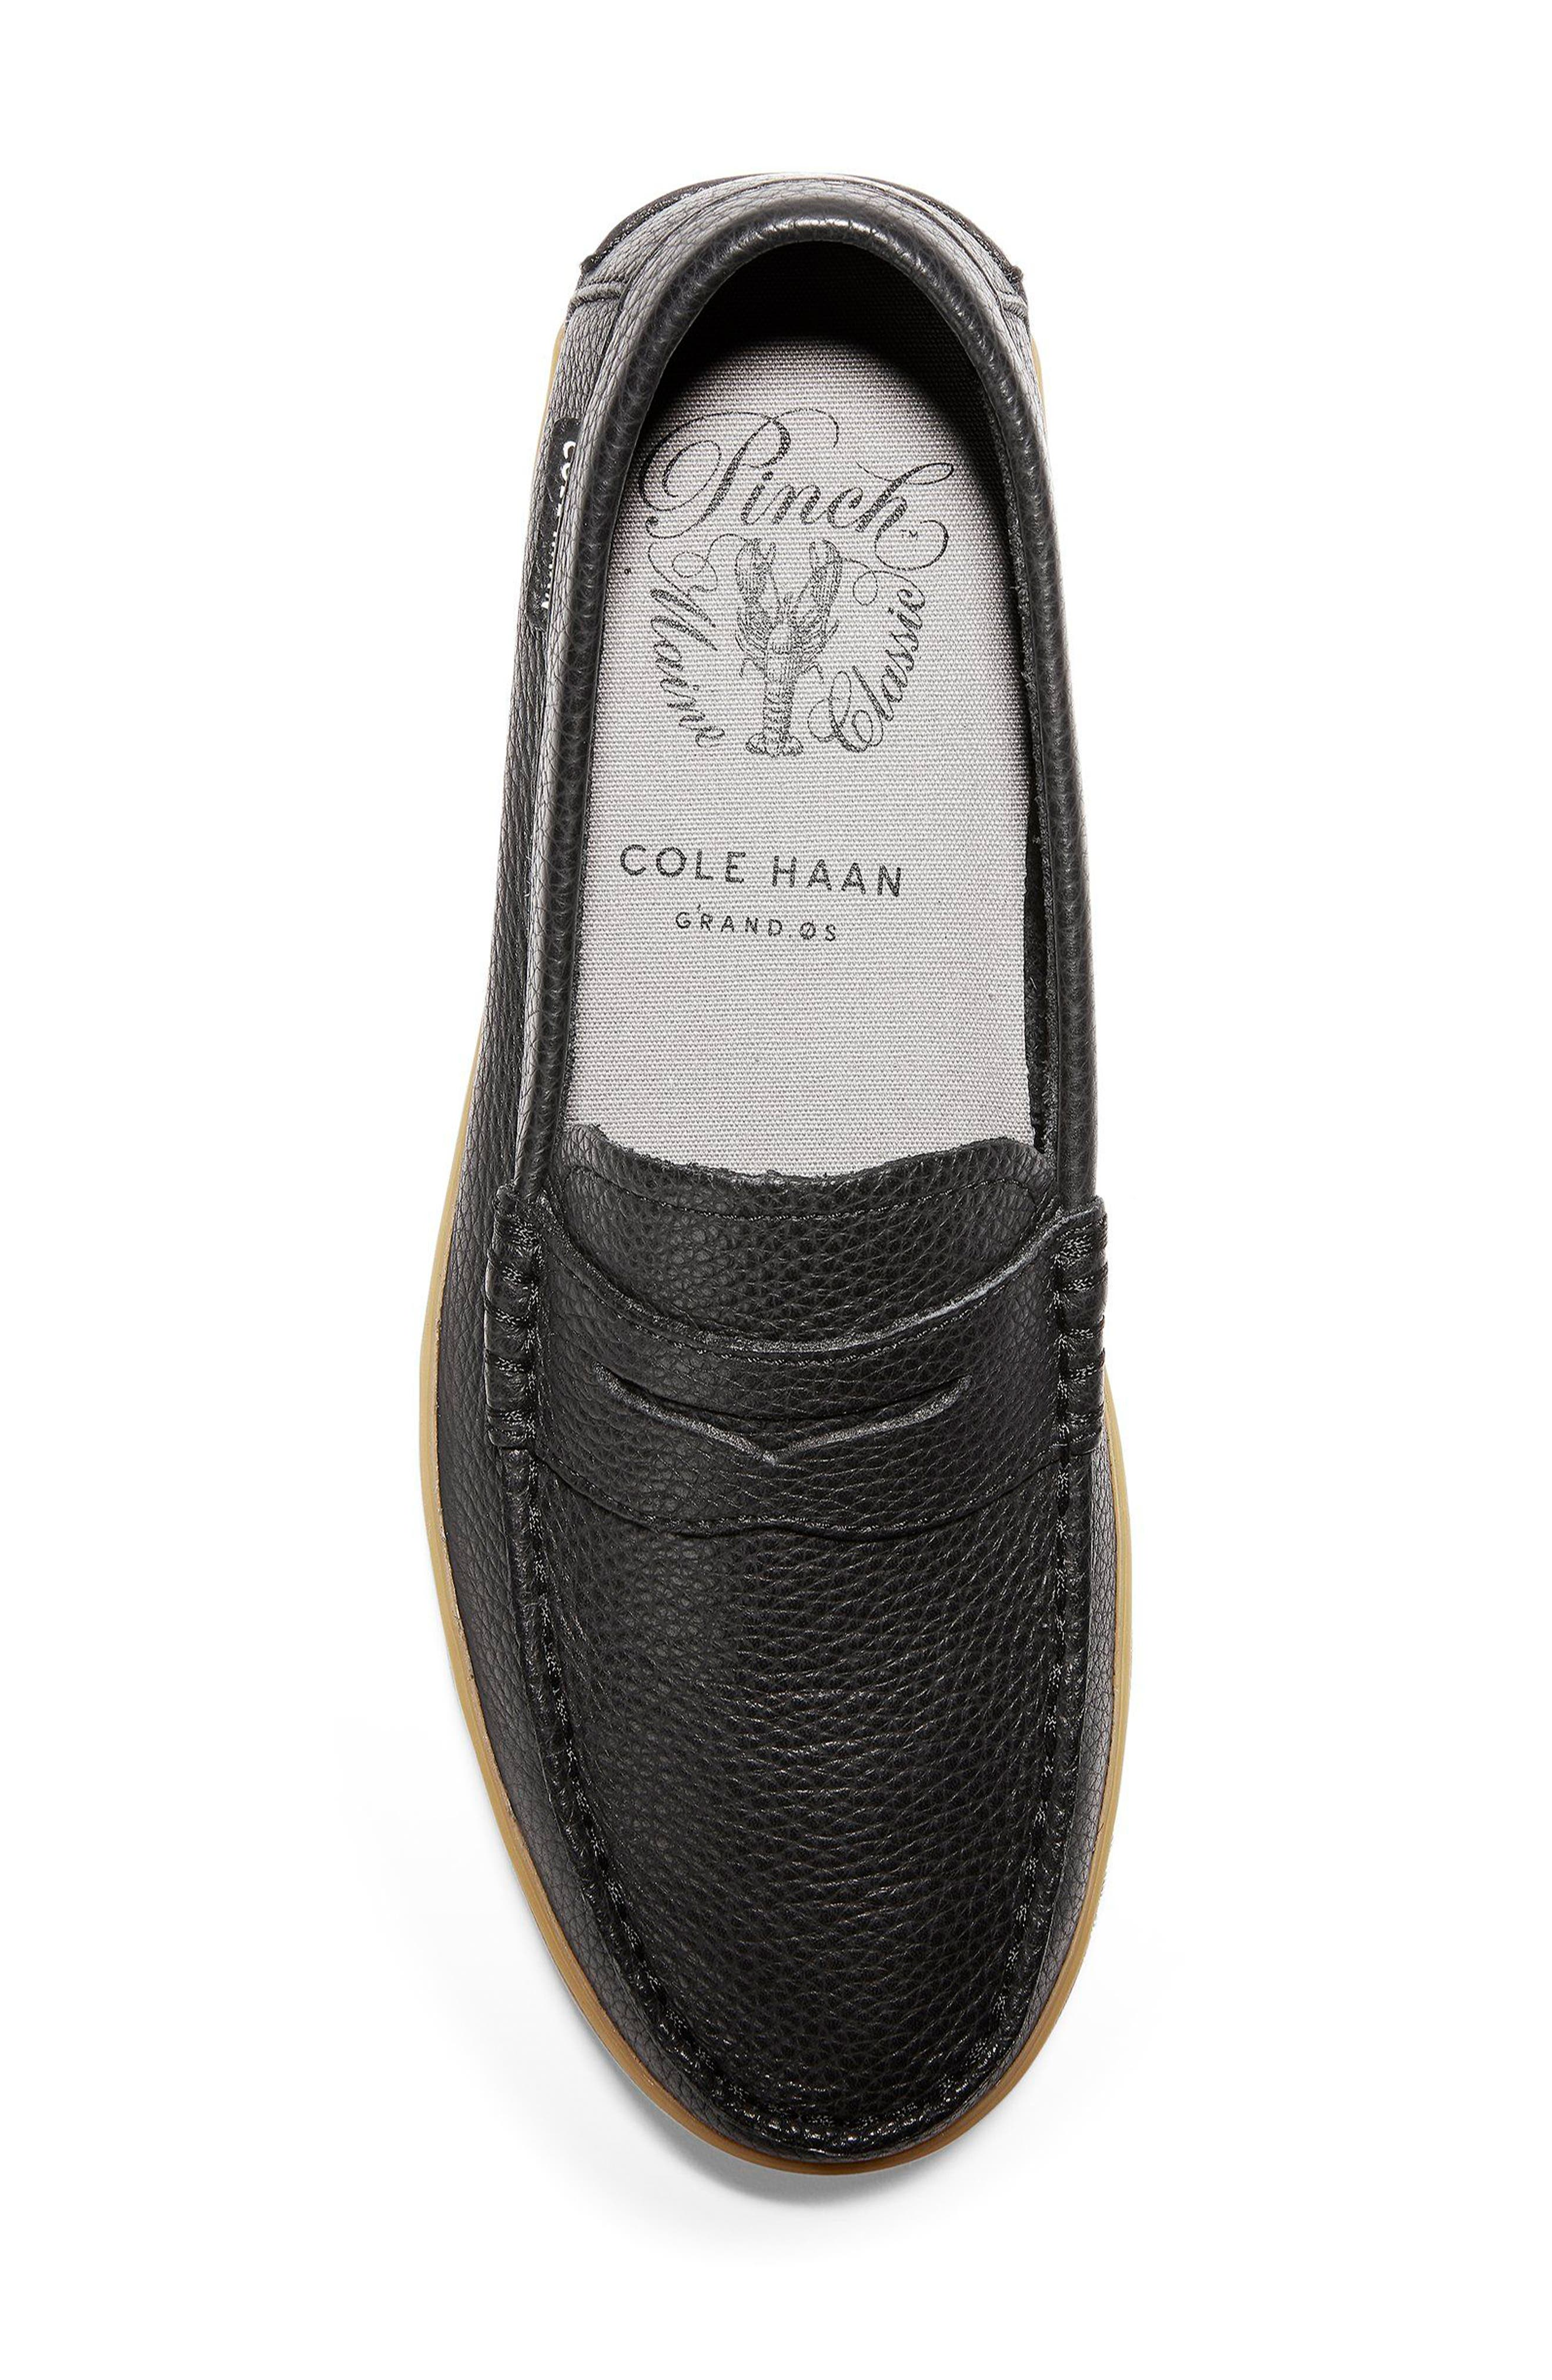 'Pinch Weekend' Penny Loafer,                             Alternate thumbnail 6, color,                             Black Tumble Leather